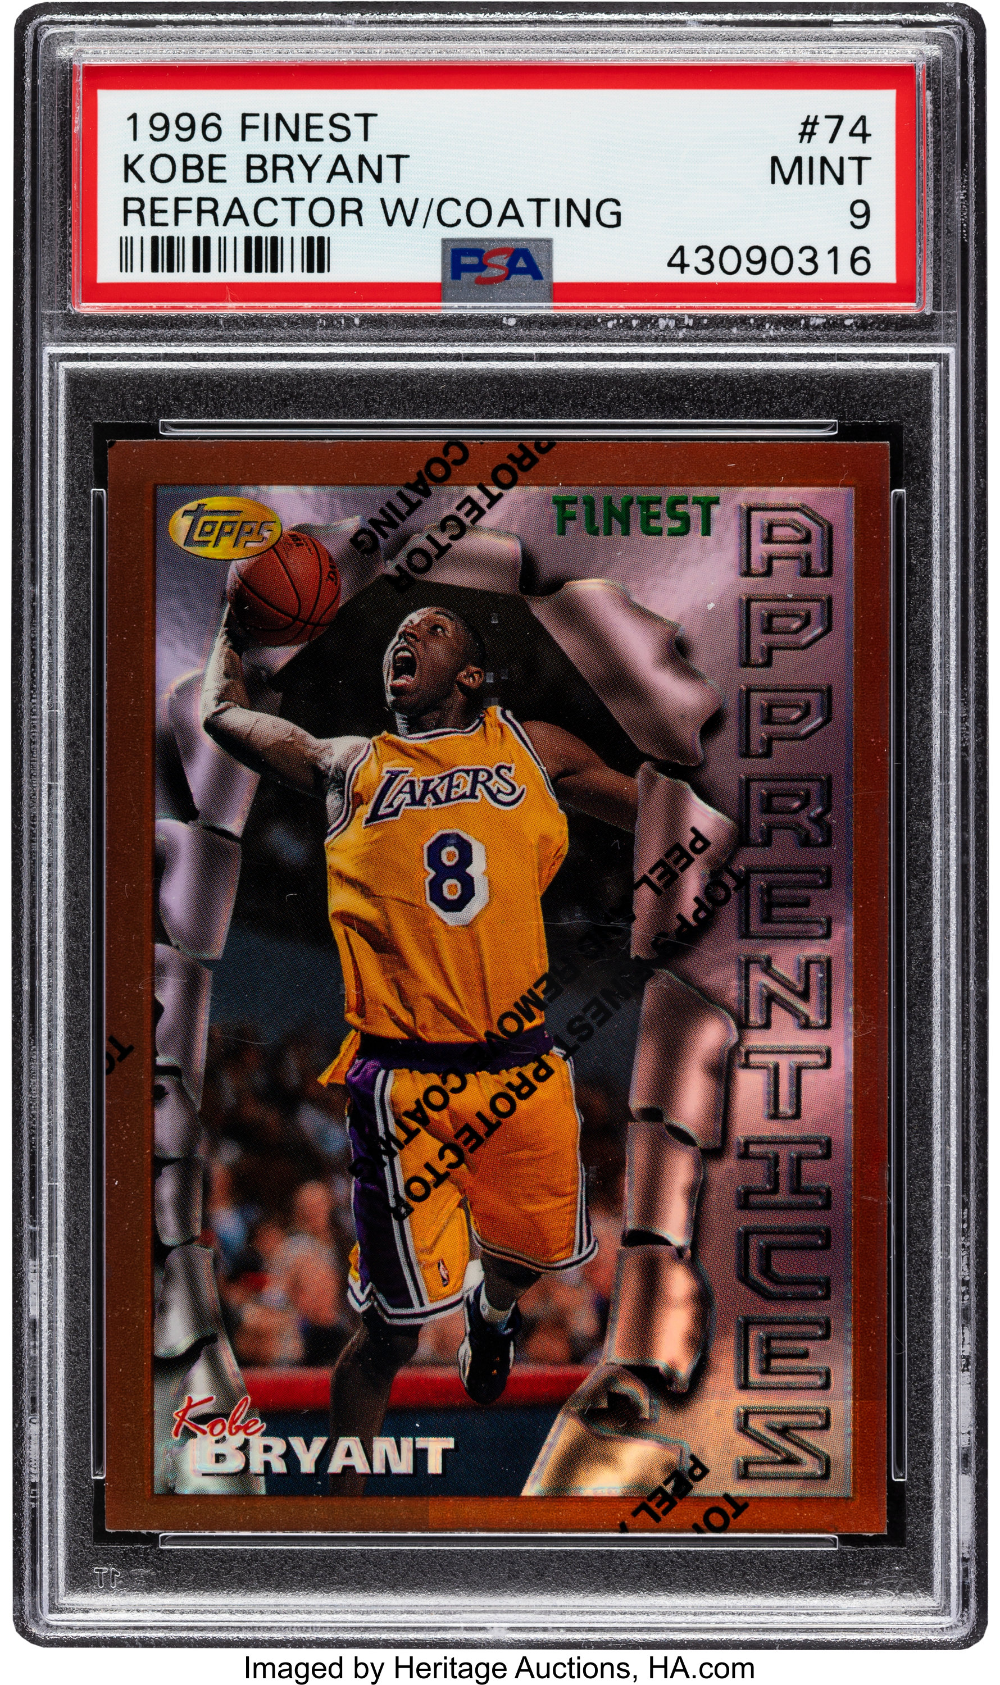 Refractor Basketball Cards Google Search In 2020 Basketball Cards Cards Baseball Cards